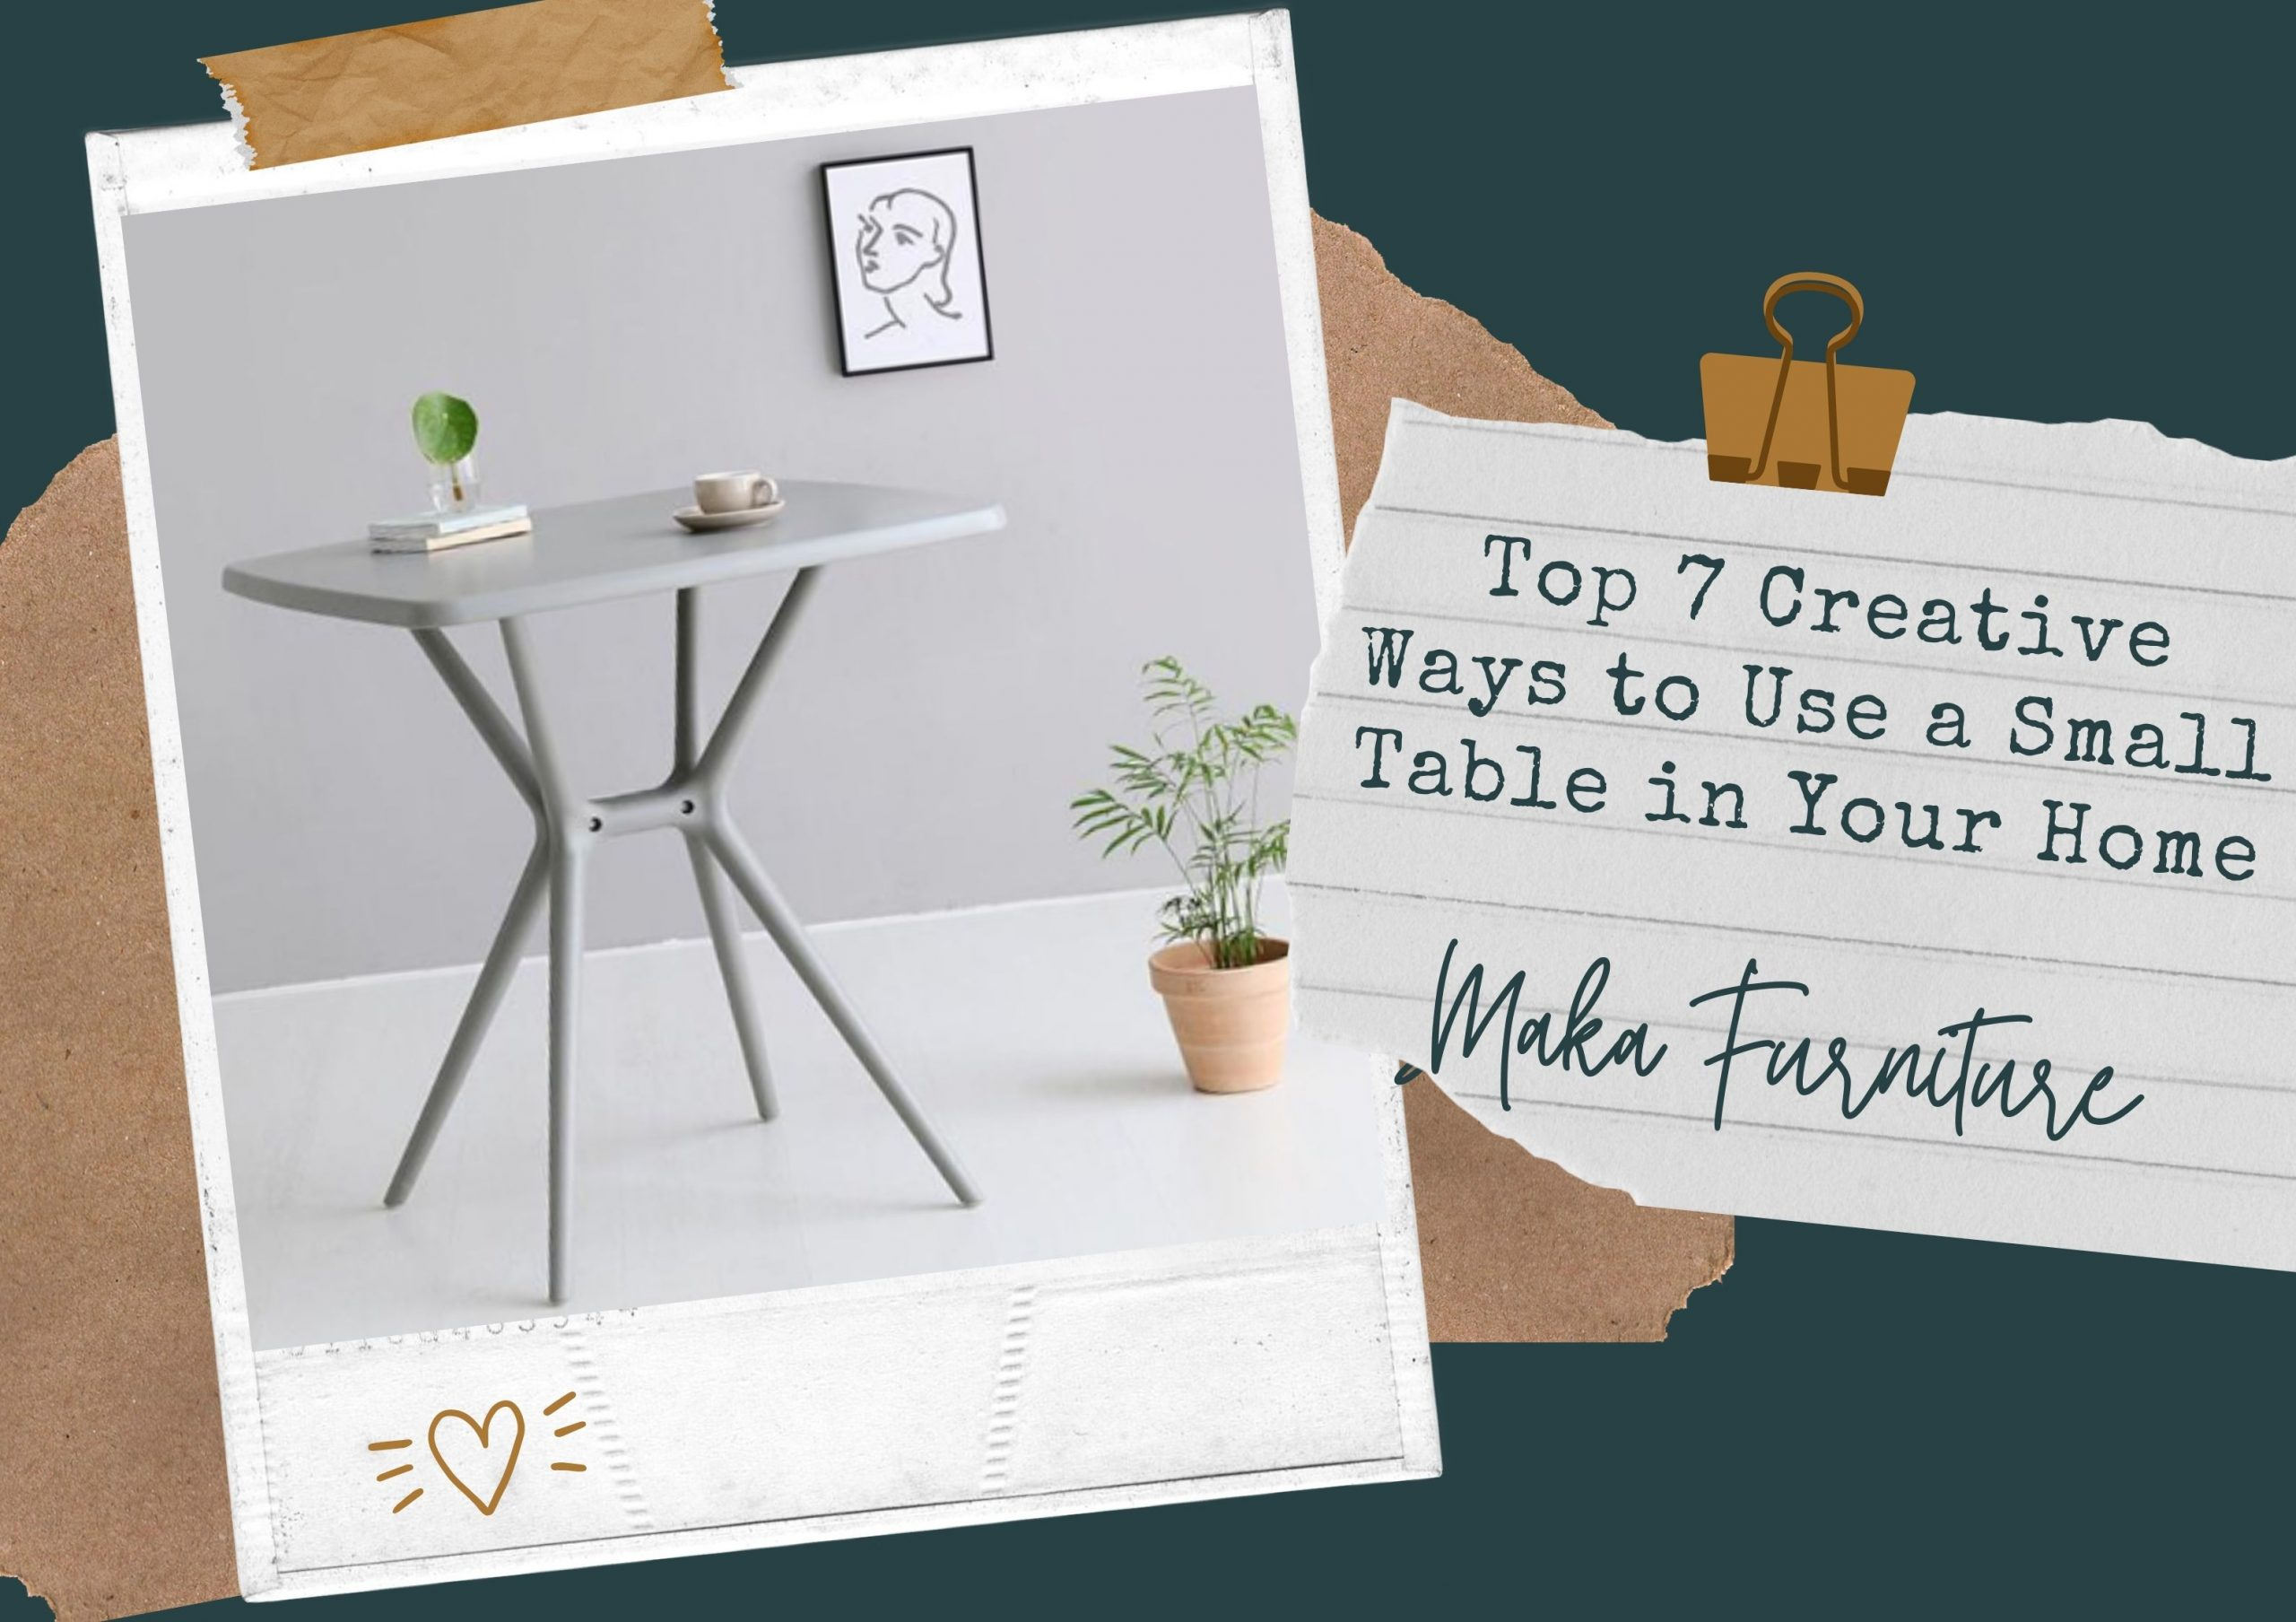 Top 7 Creative Ways to Use a Small Table in Your Home scaled